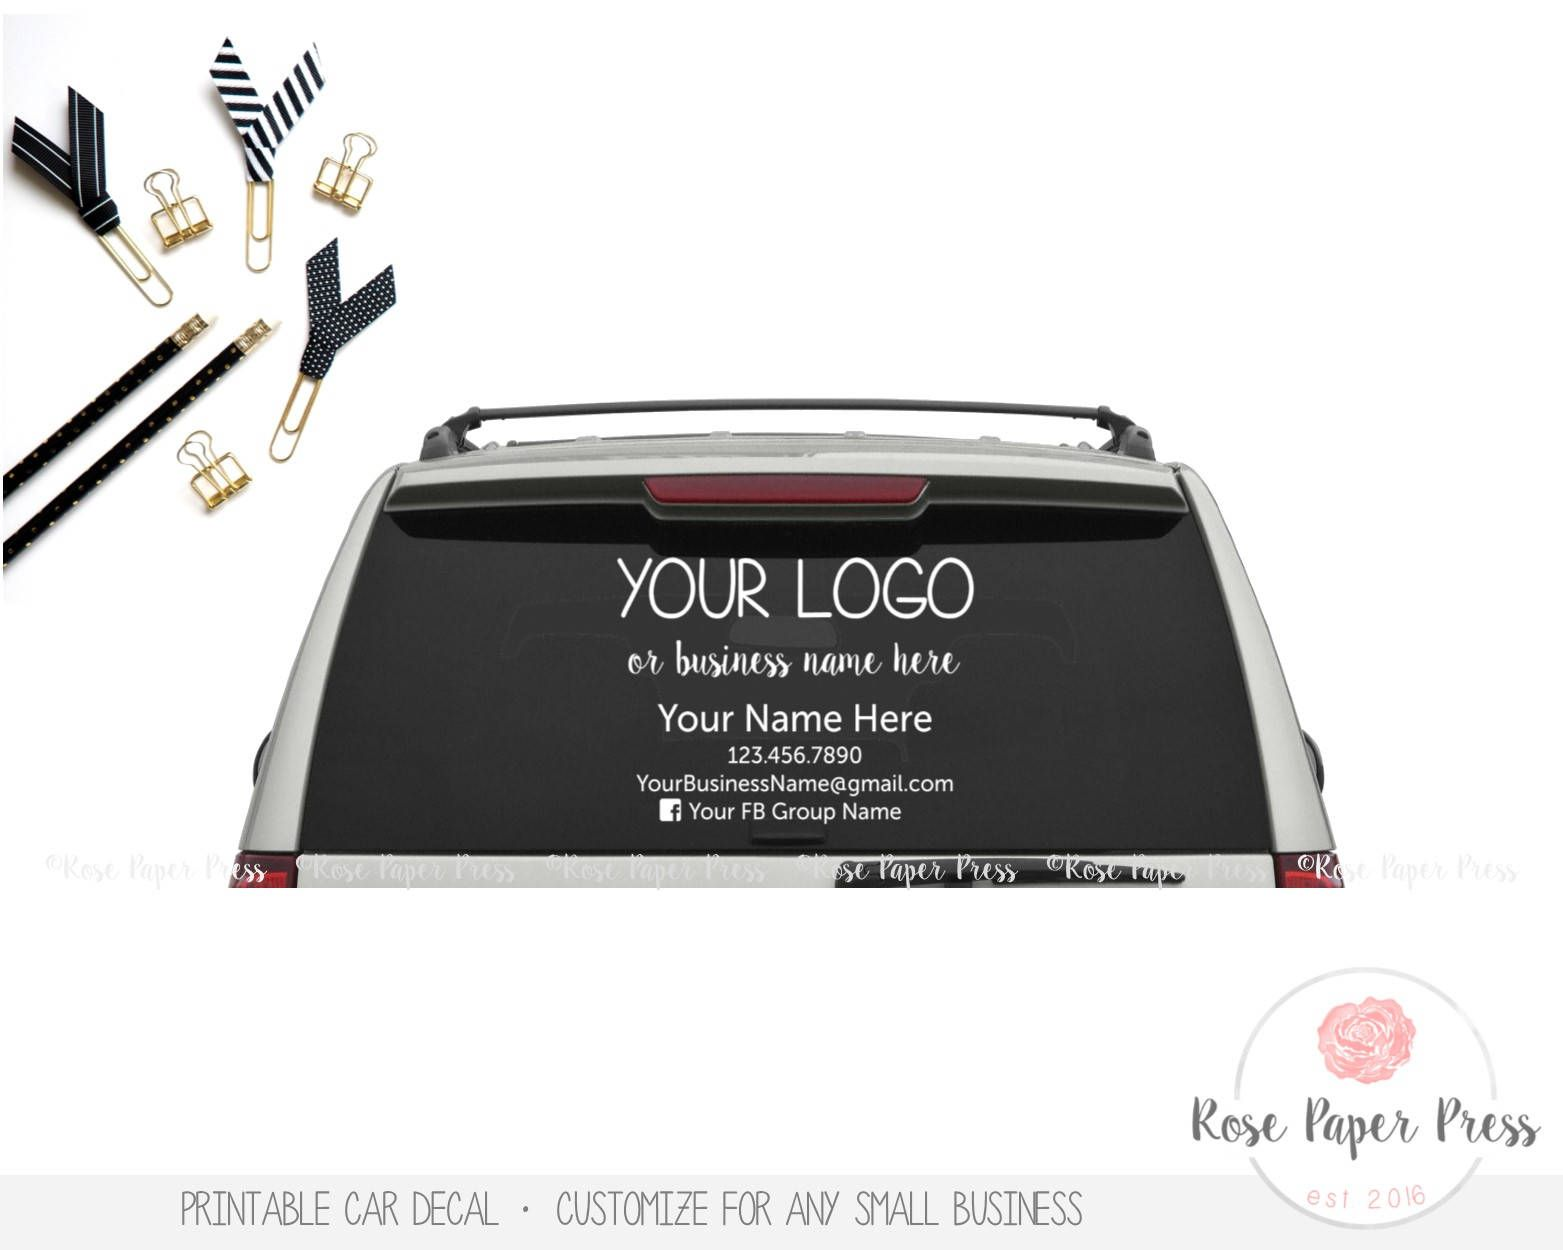 Car Decal Custom Printable Decal Small Business Marketing Window Decal Car Sticker By Rosepaperpress On Etsy Car Decals Handmade Shop Window Decals [ 1250 x 1563 Pixel ]